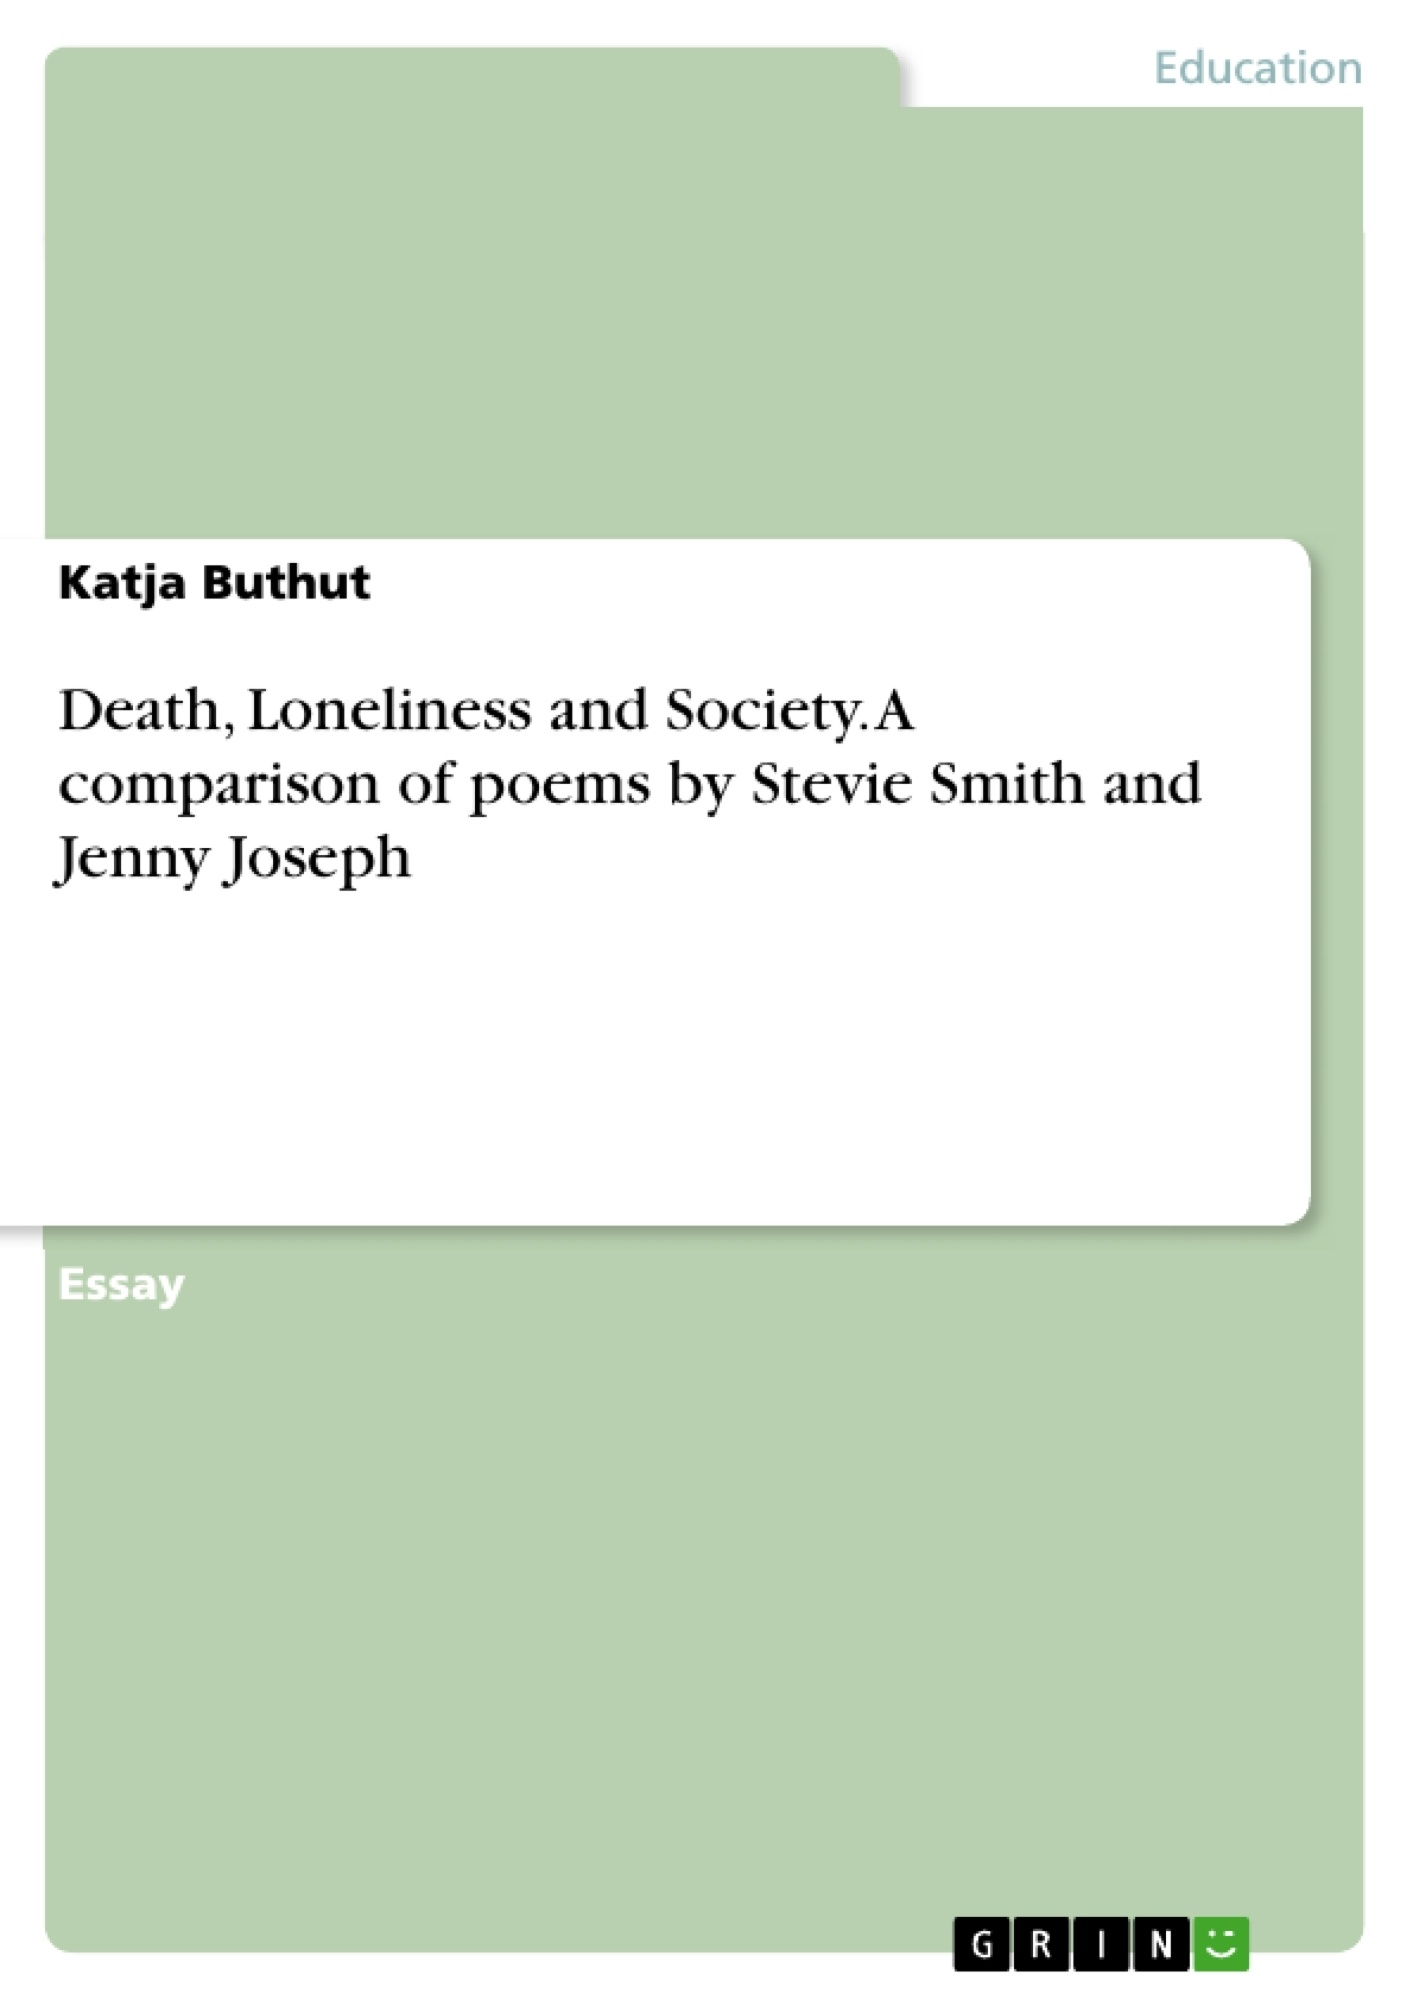 death loneliness and society a comparison of poems by stevie a comparison of poems by stevie publish your master s thesis bachelor s thesis essay or term paper